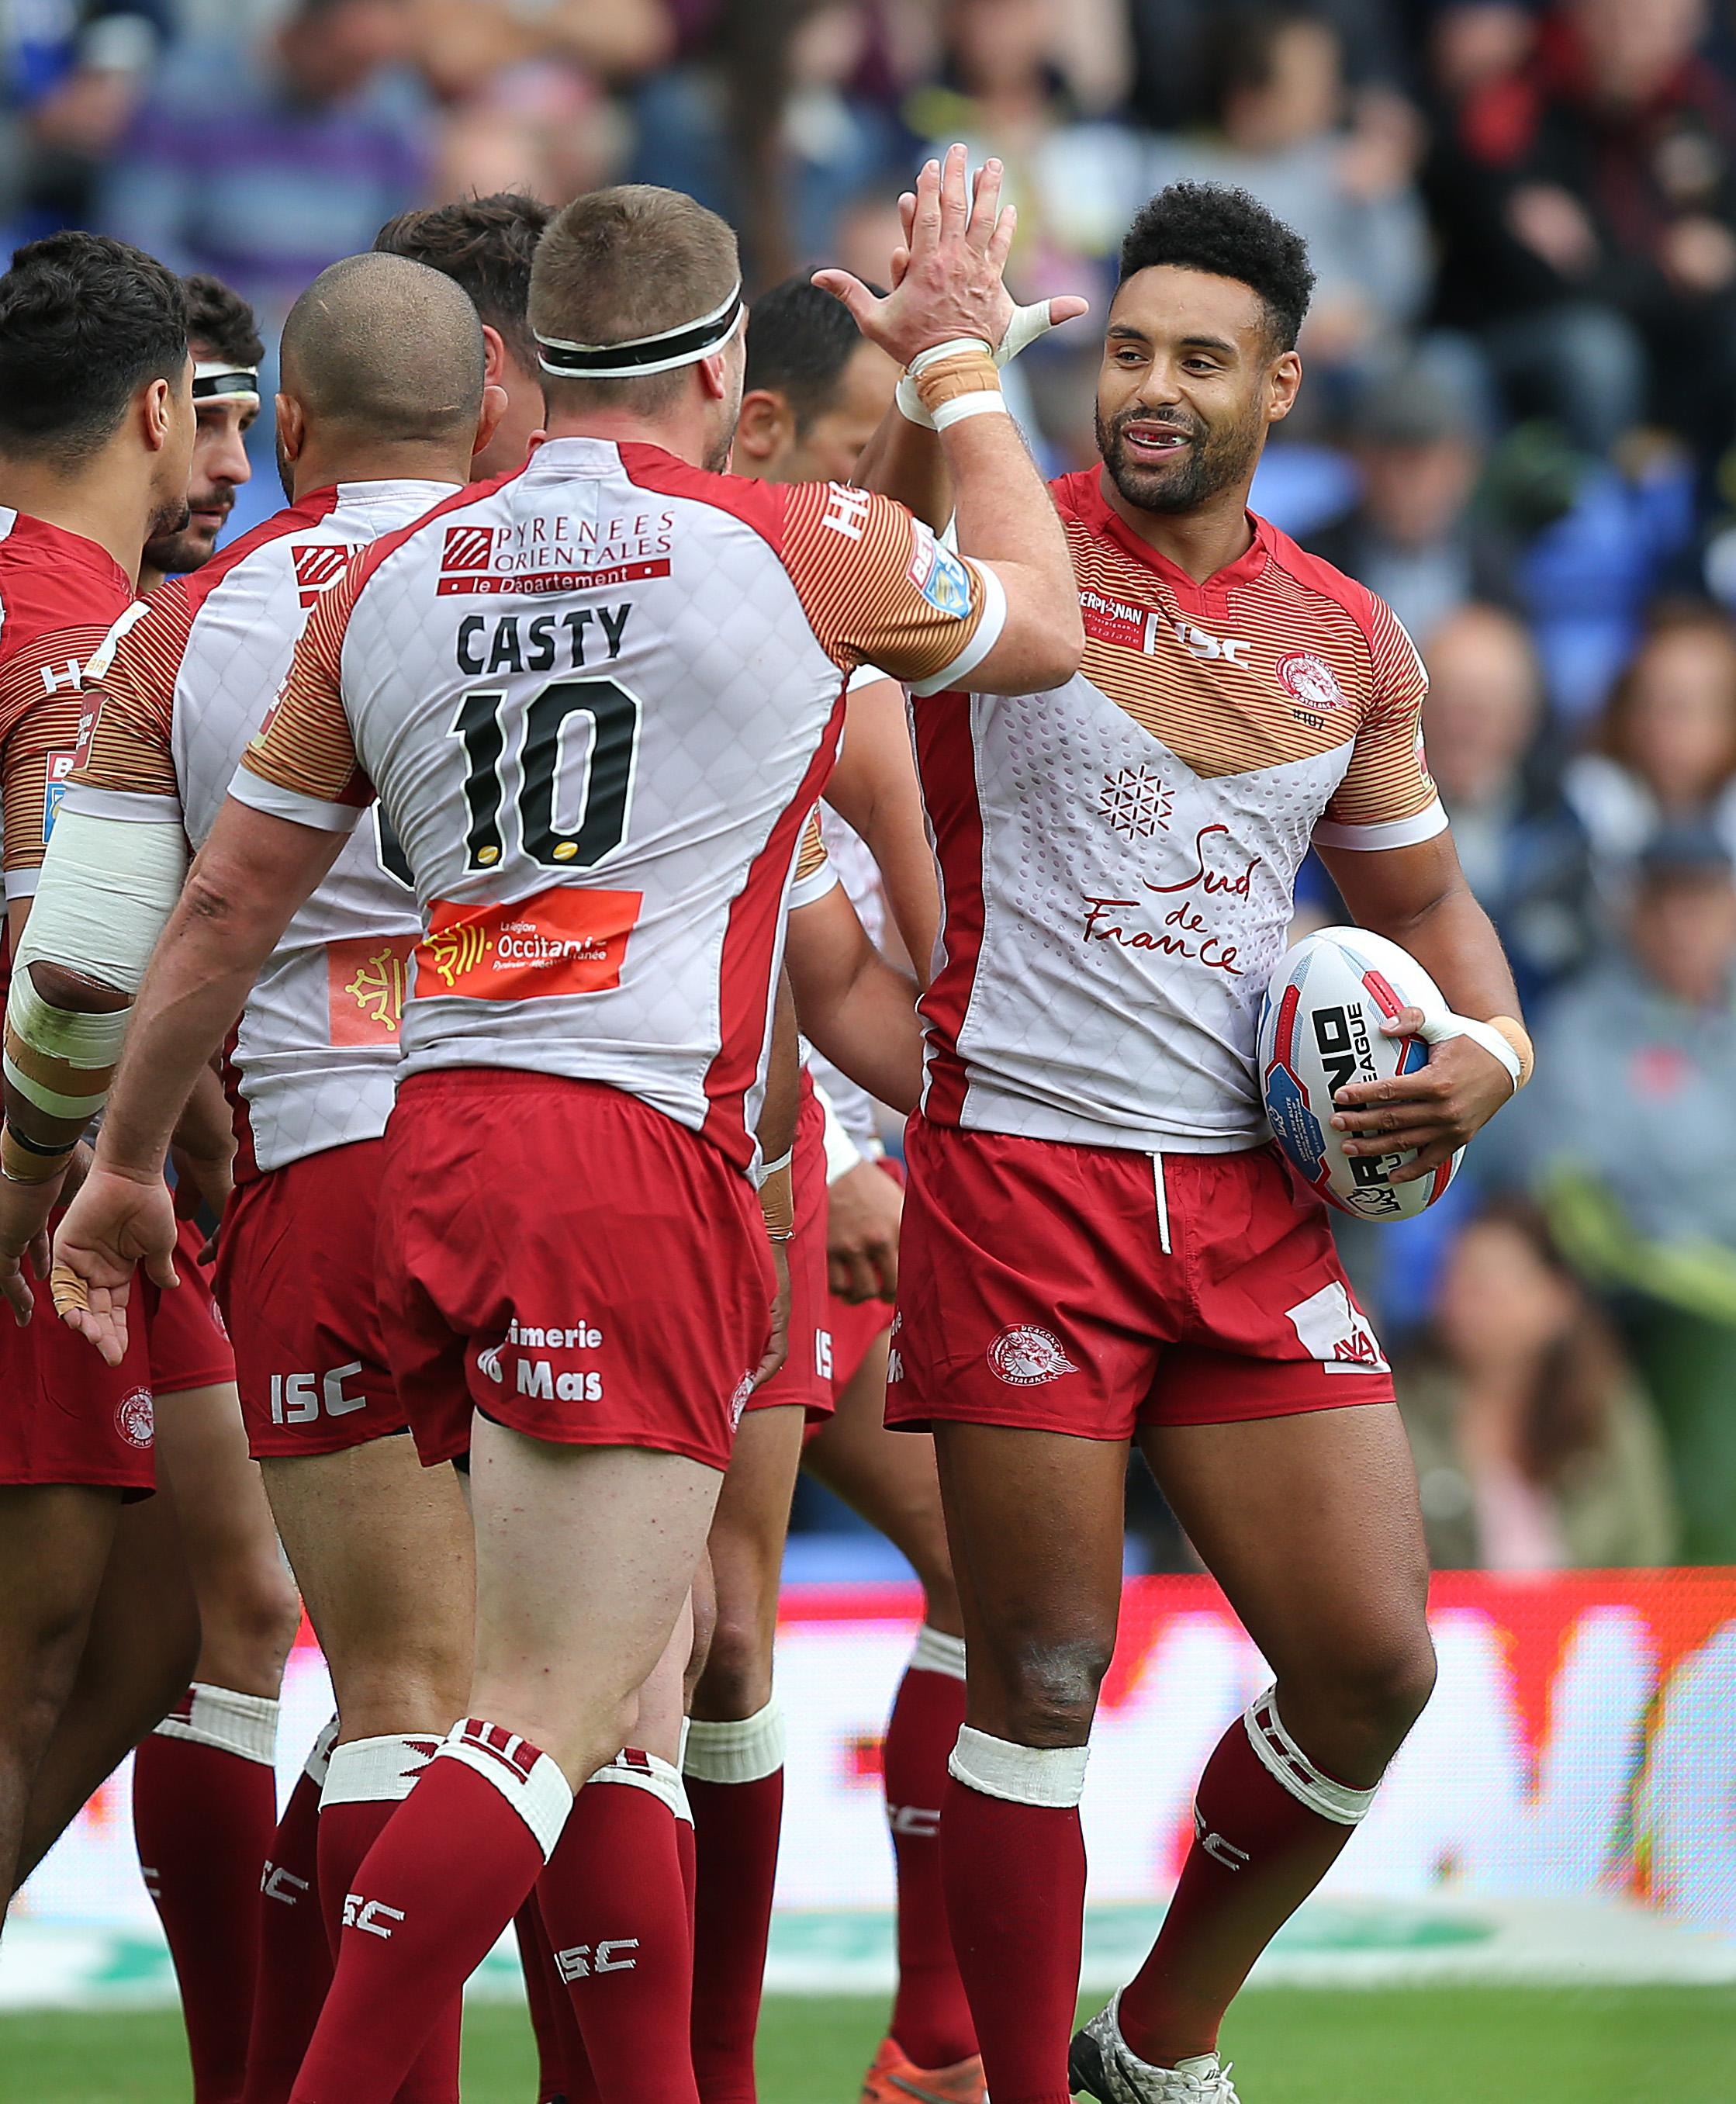 Warrington face Catalans Dragons at Wembley